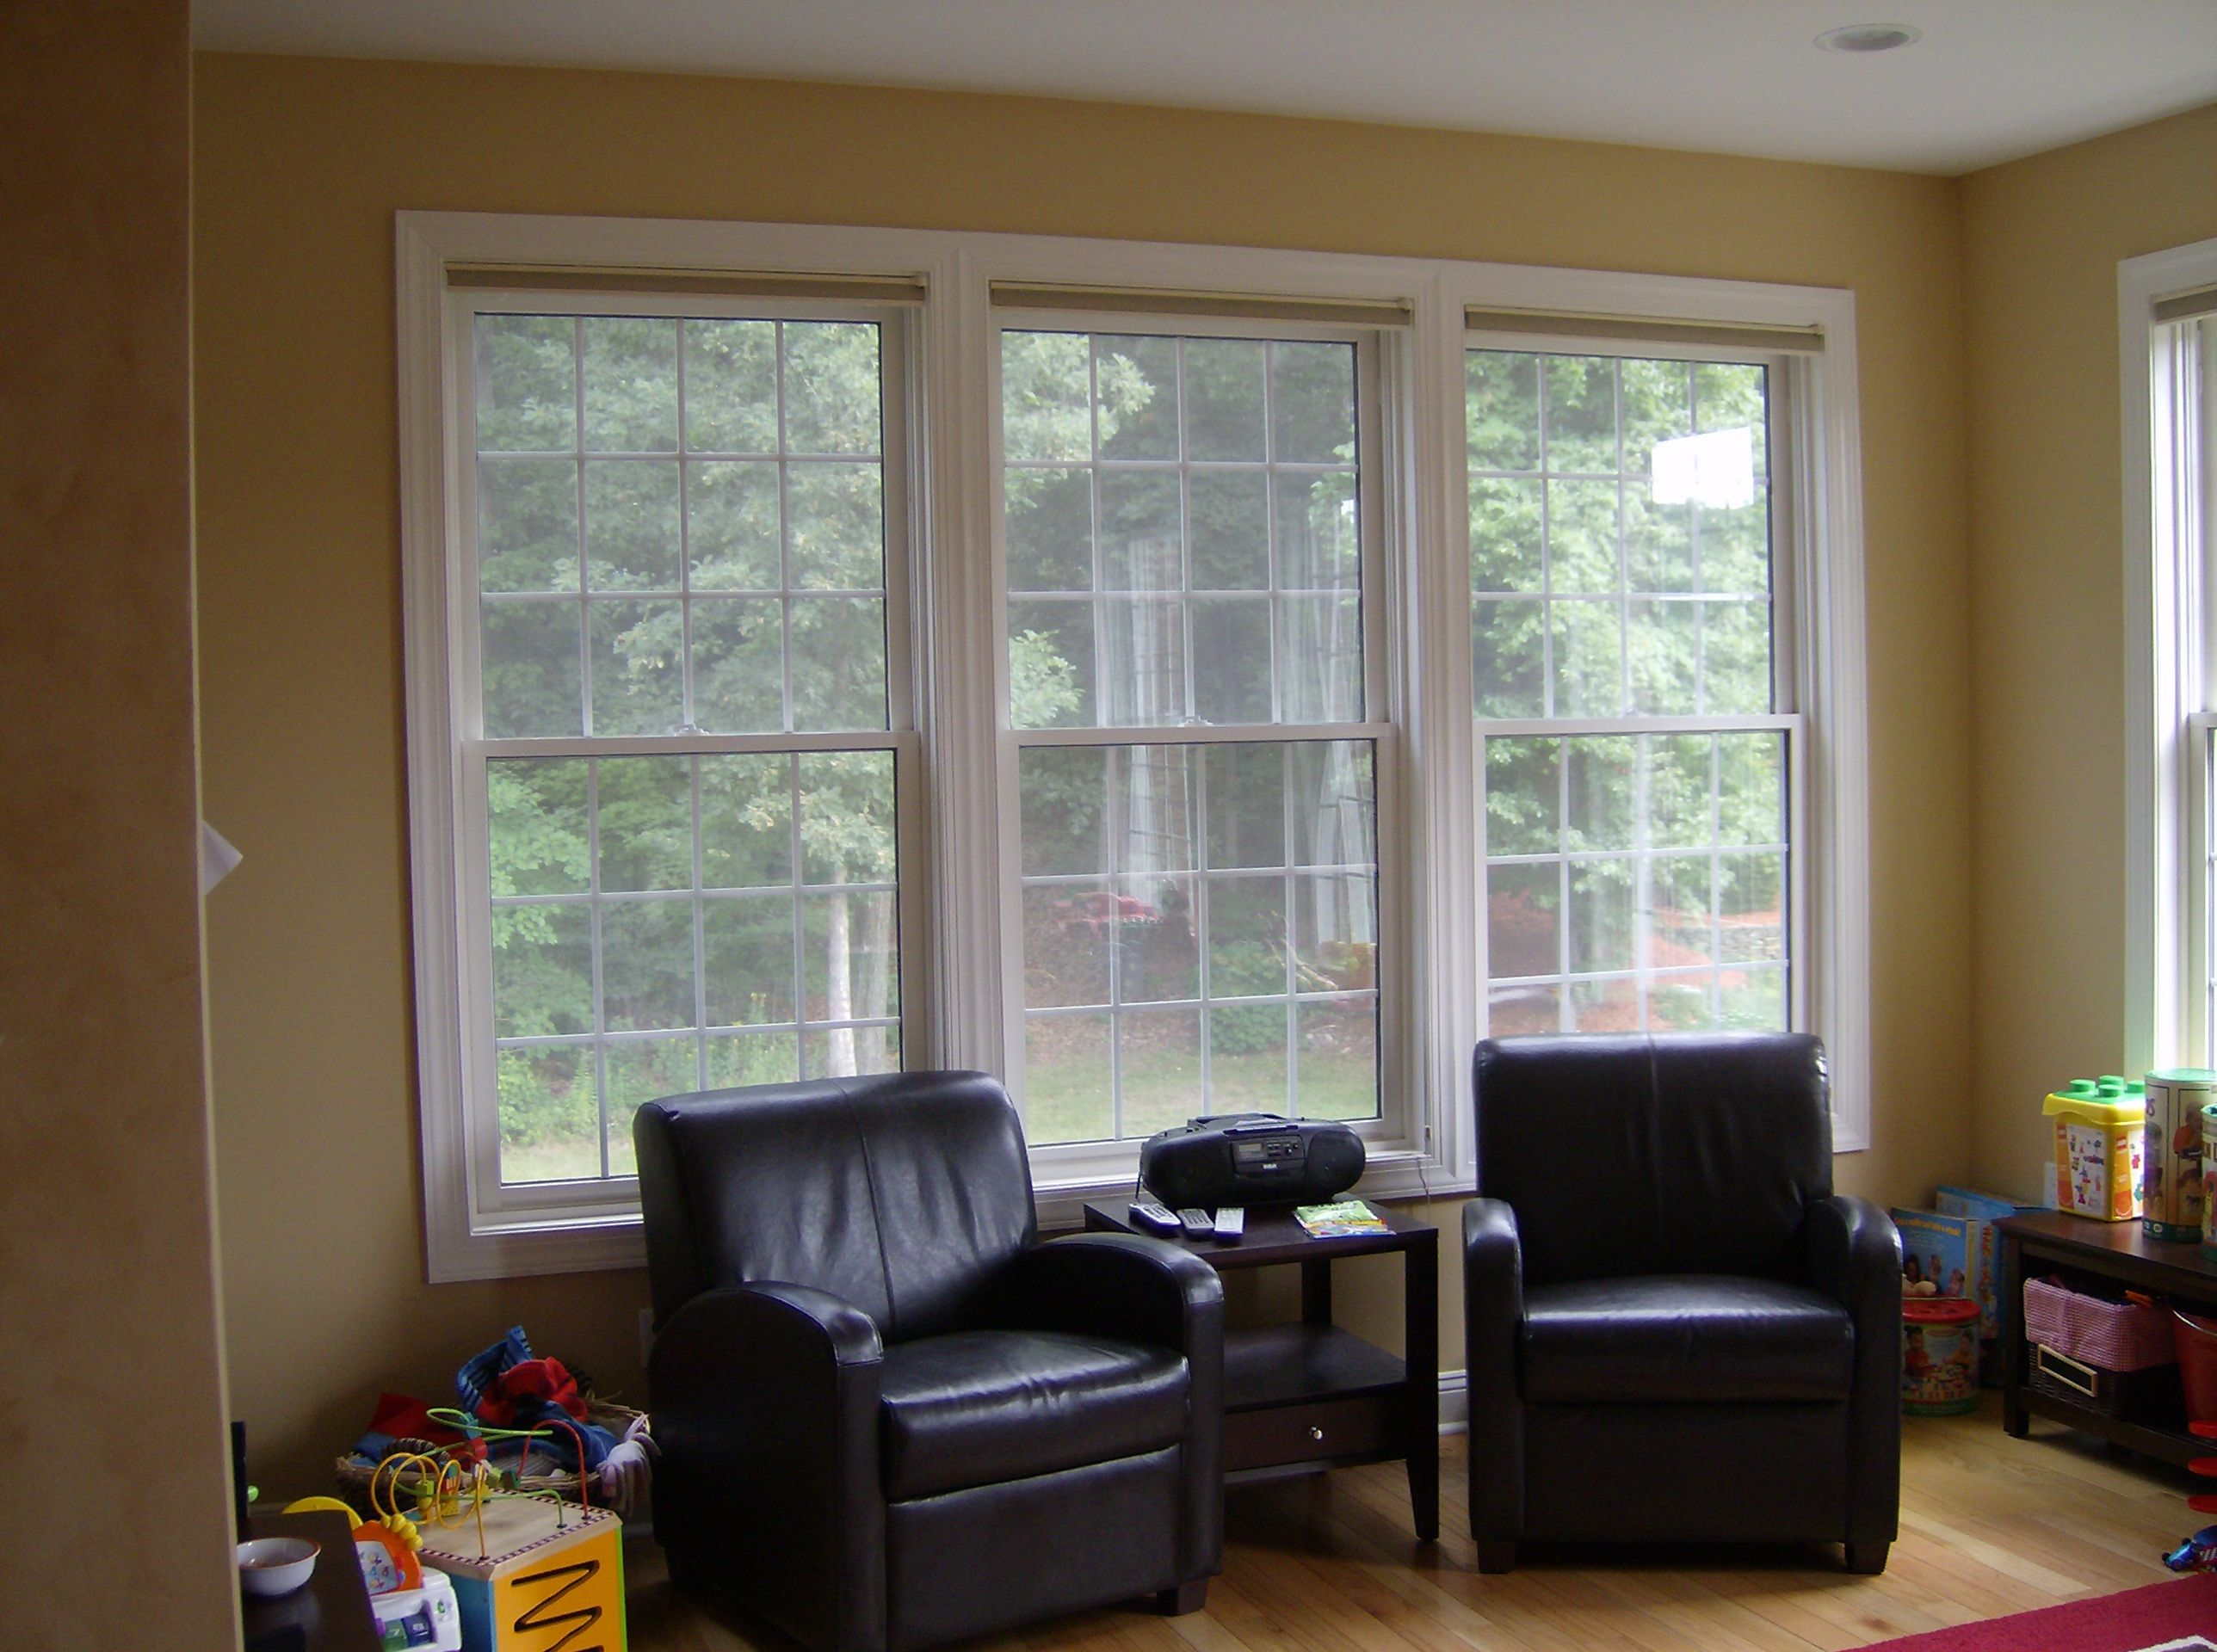 Another living room window option.